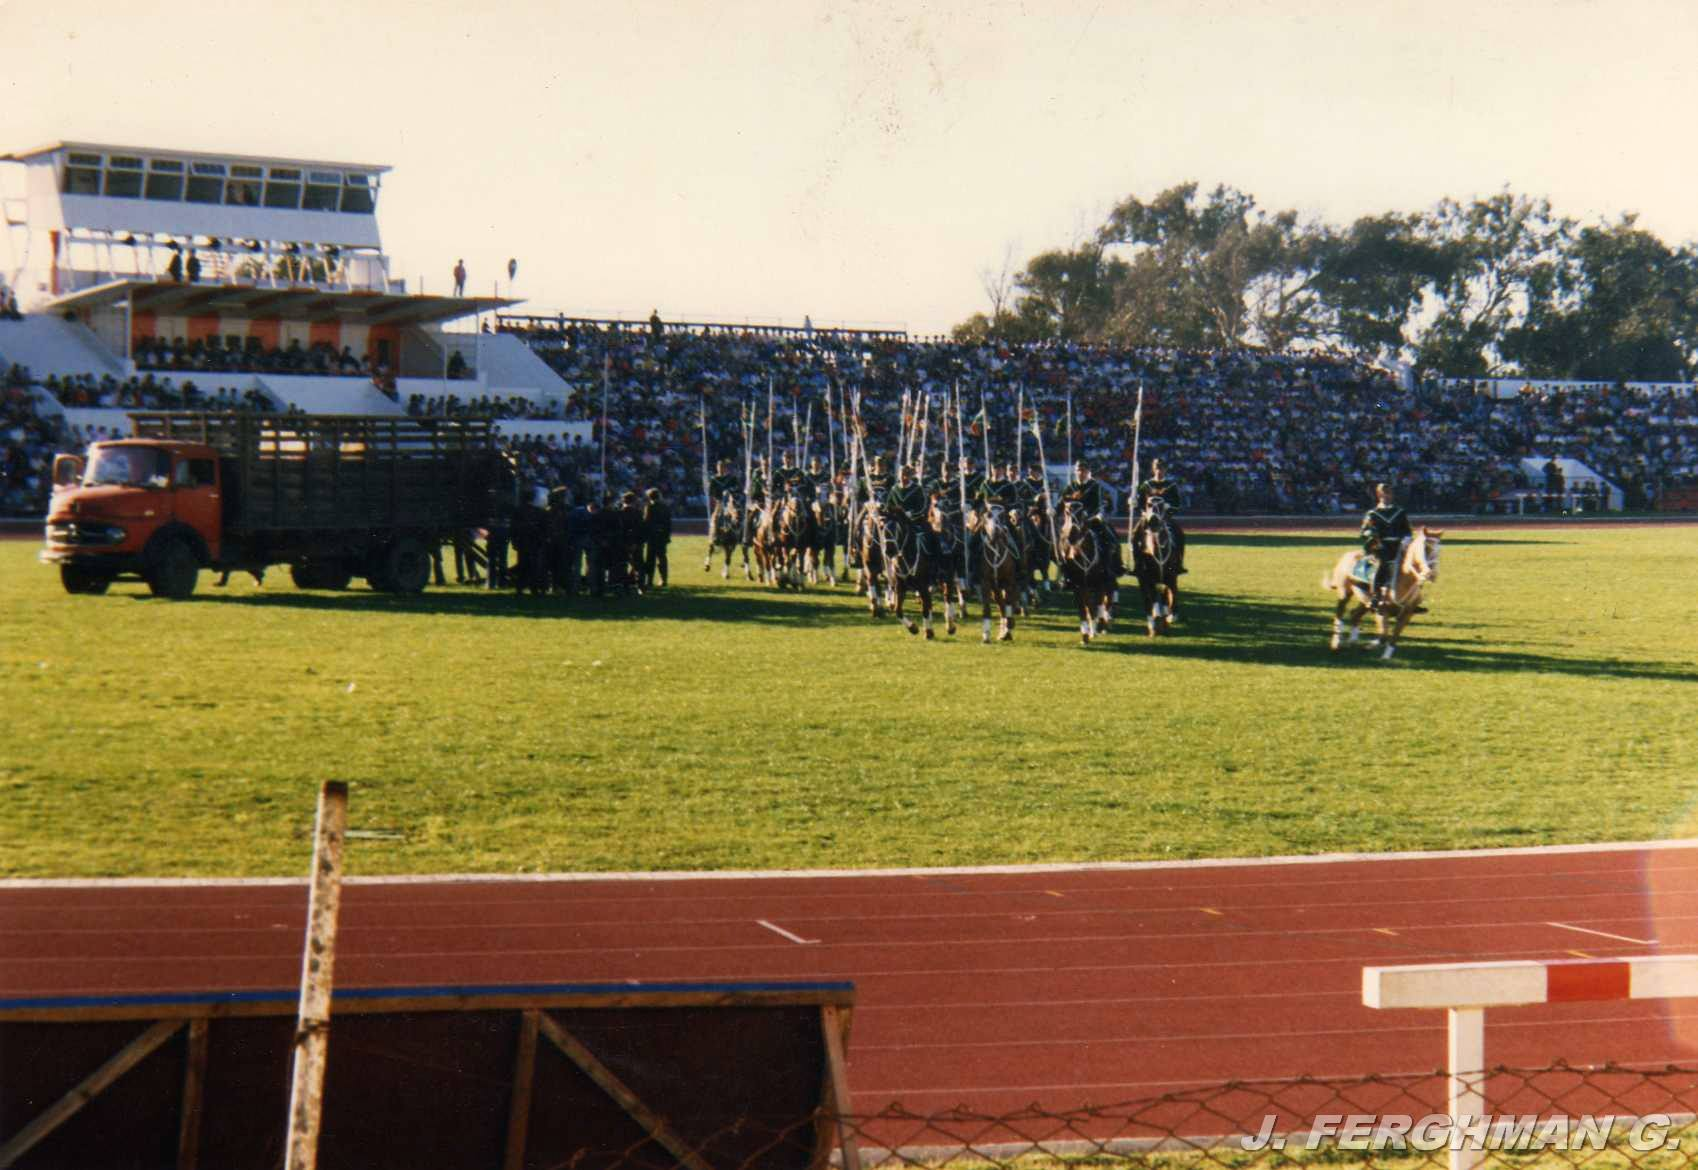 Enterreno - Fotos históricas de chile - fotos antiguas de Chile - Estadio Sausalito en 1986